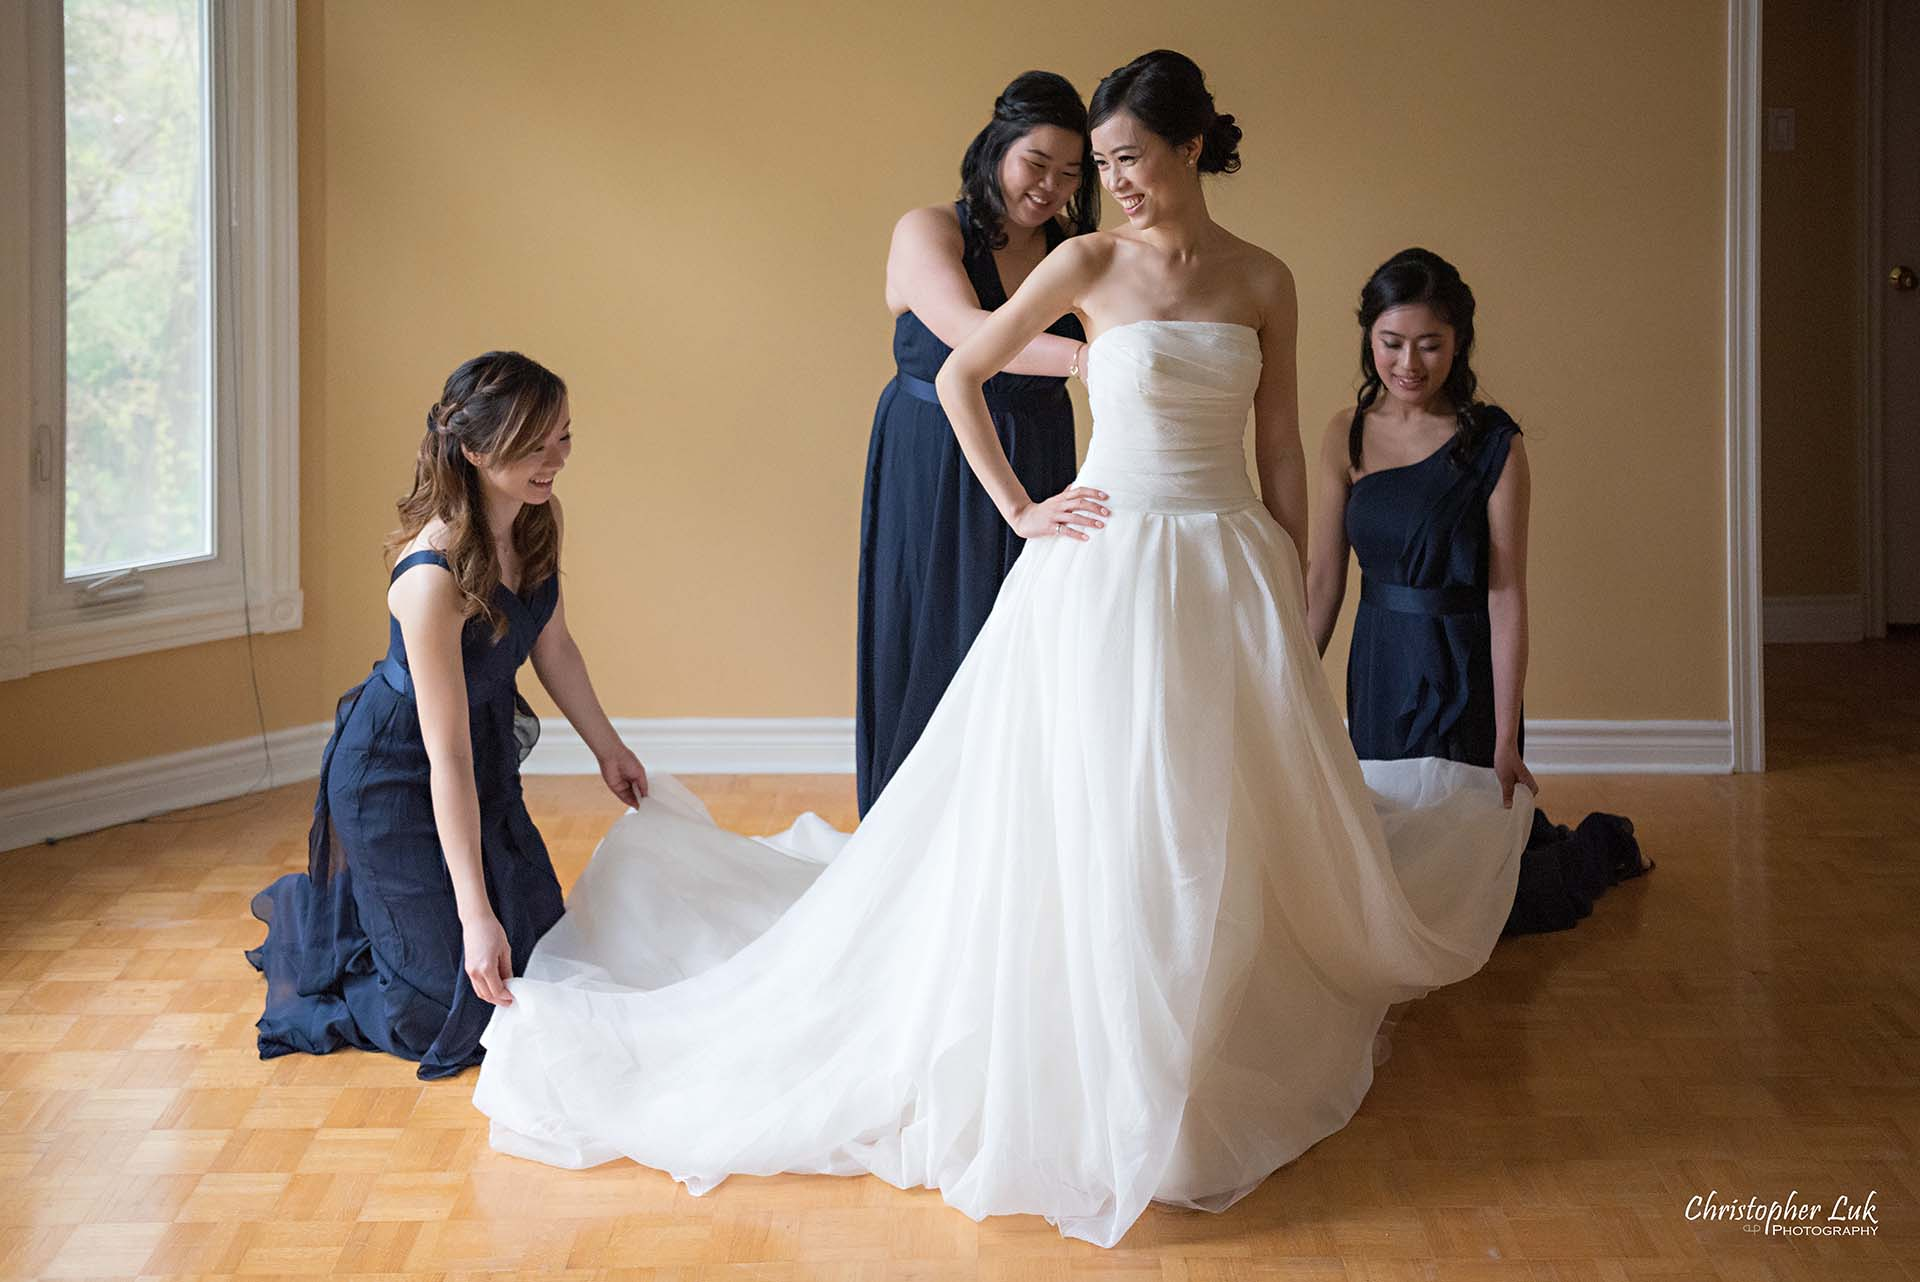 Christopher Luk Toronto Wedding Photographer Bride Getting Ready Preparations Bridal White Gown Dress Maid of Honour Bridesmaids Landscape